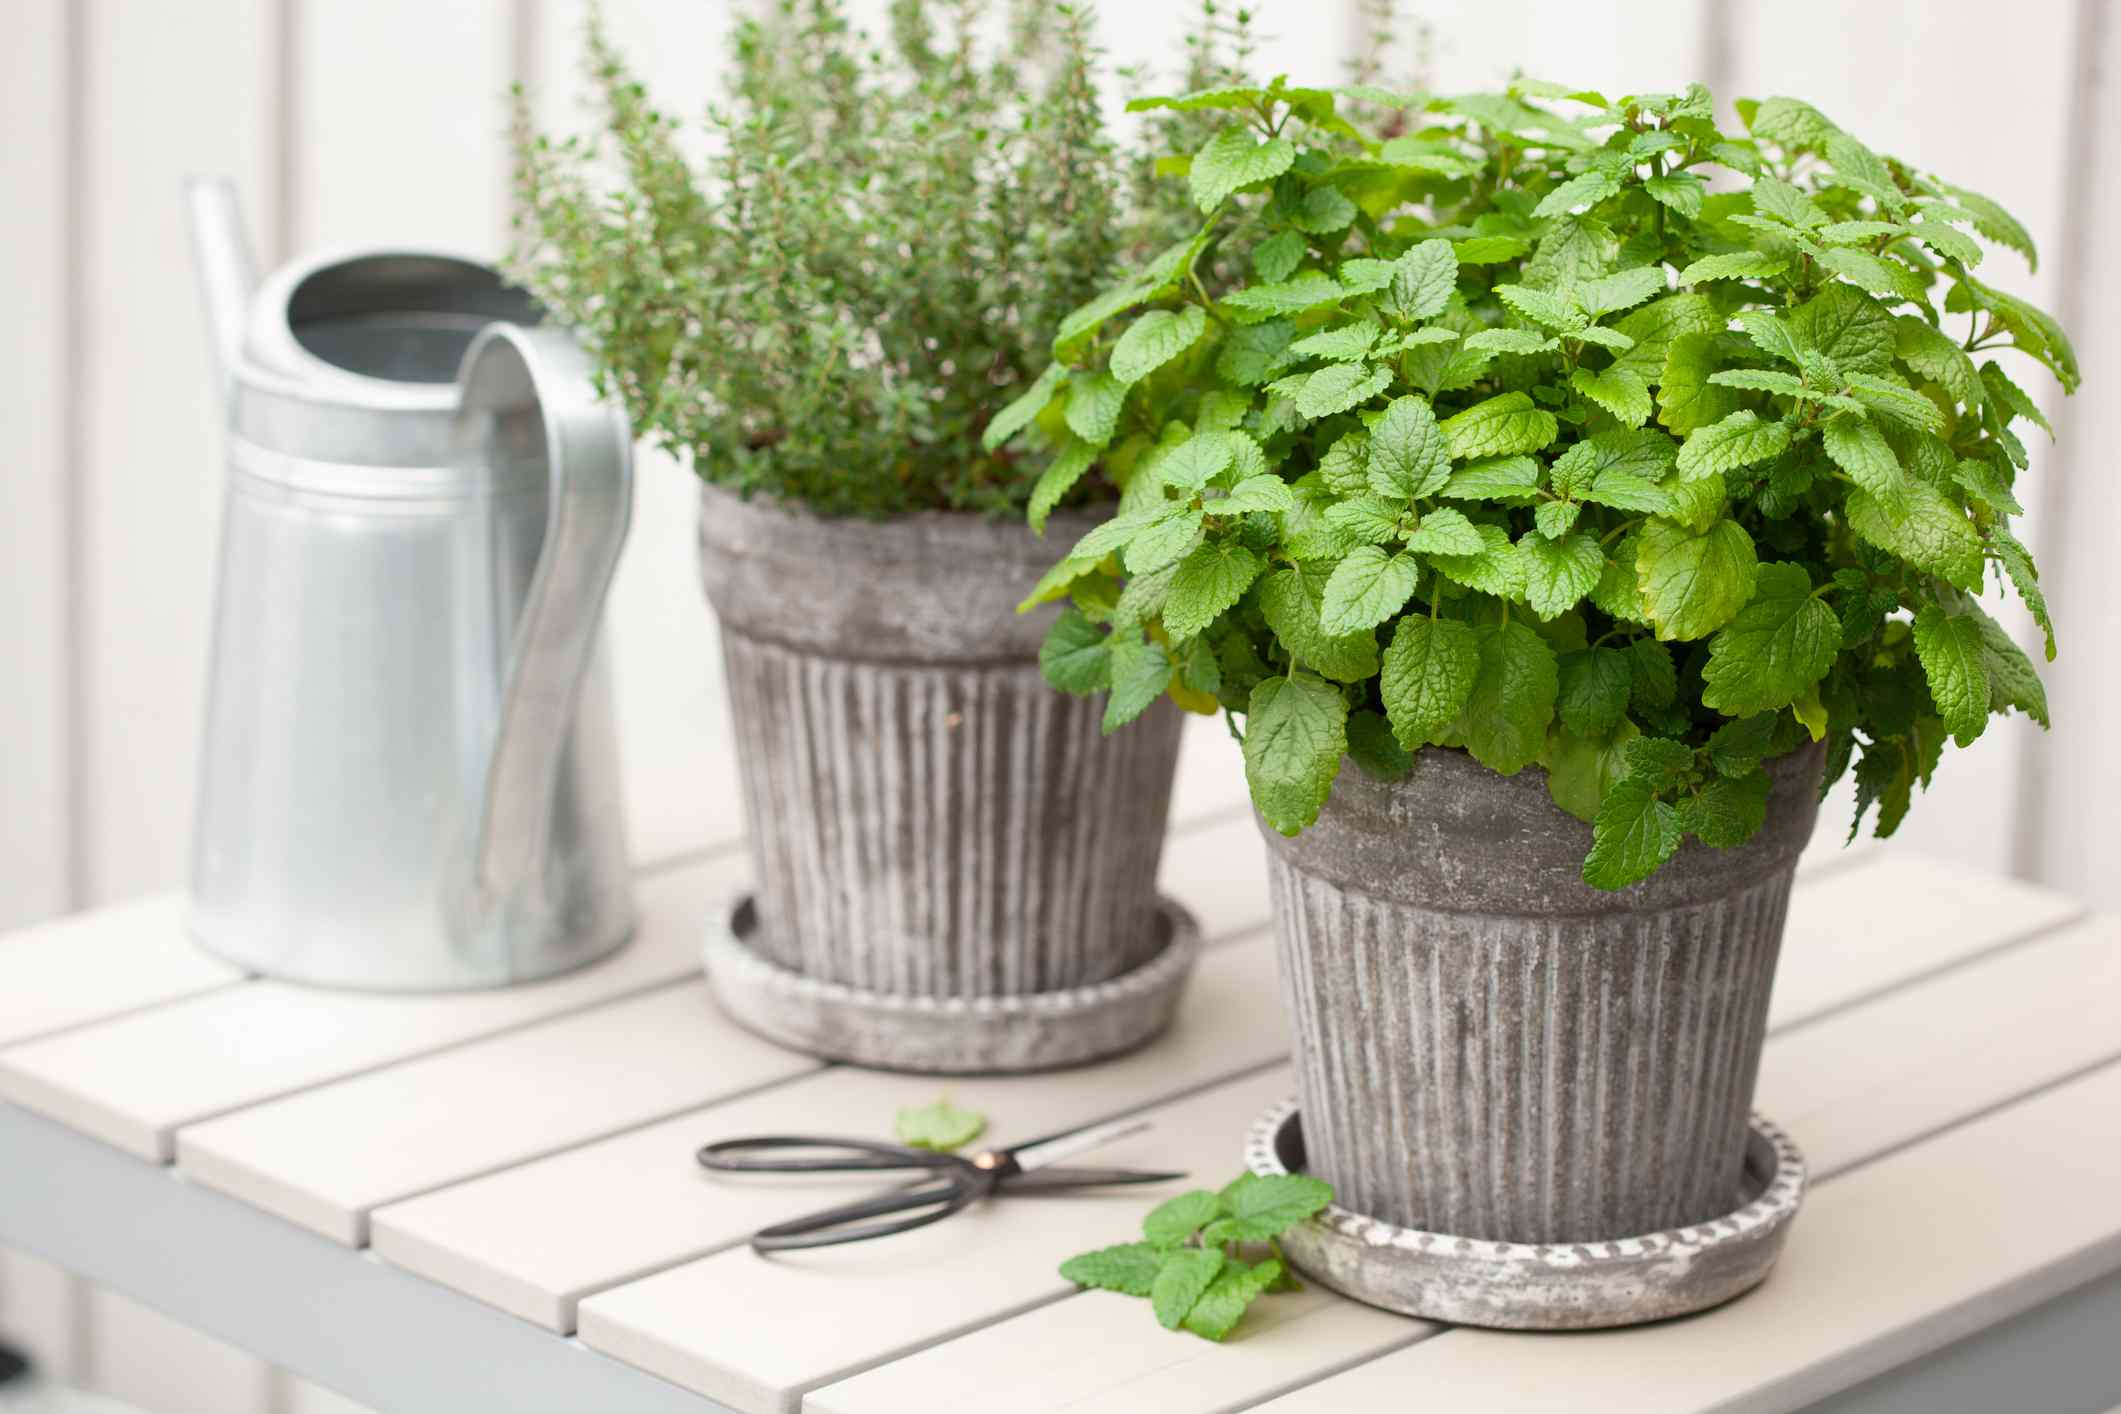 lemon balm and thyme plants in metal pots with scissors and watering can